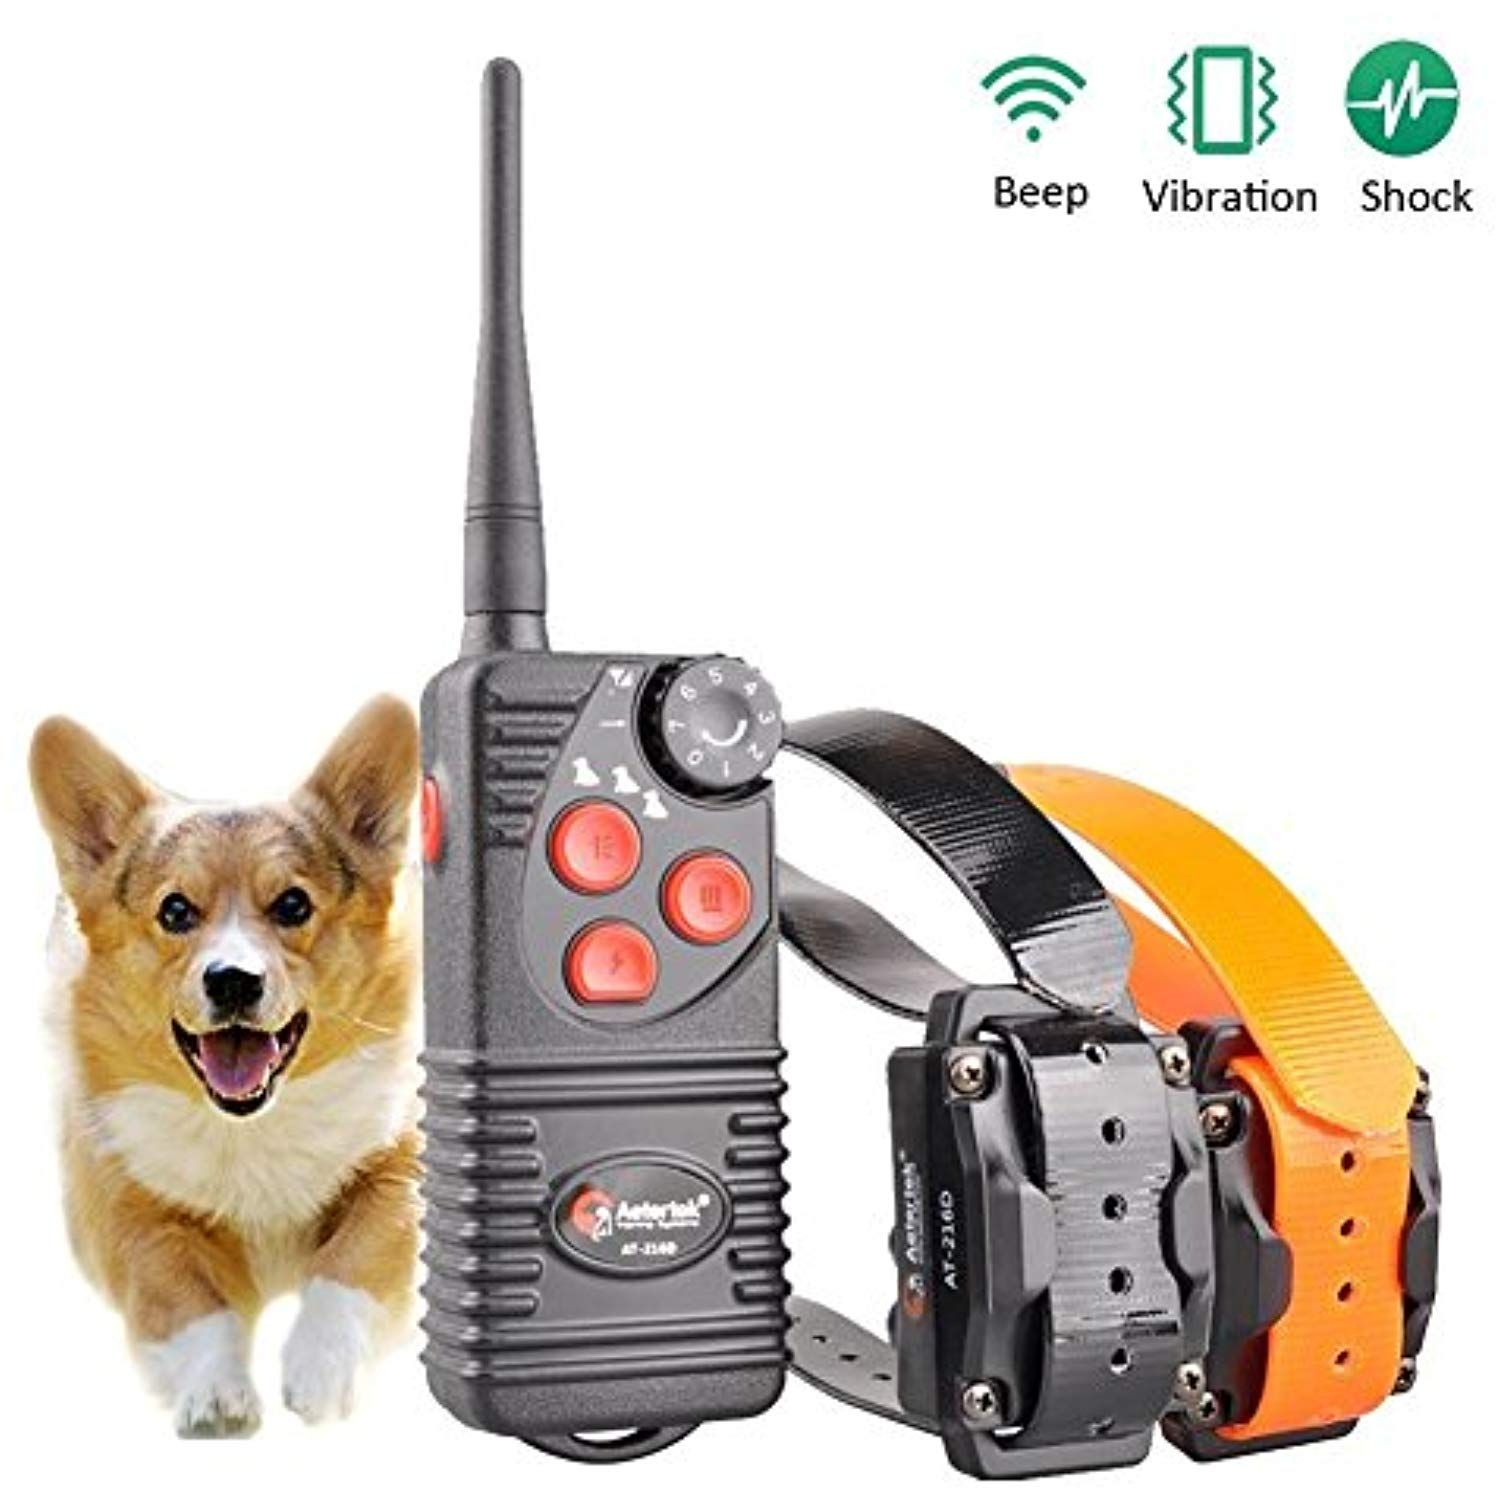 Aetertek At 216s Submersible 550m Remote Range Pet Dog Electric